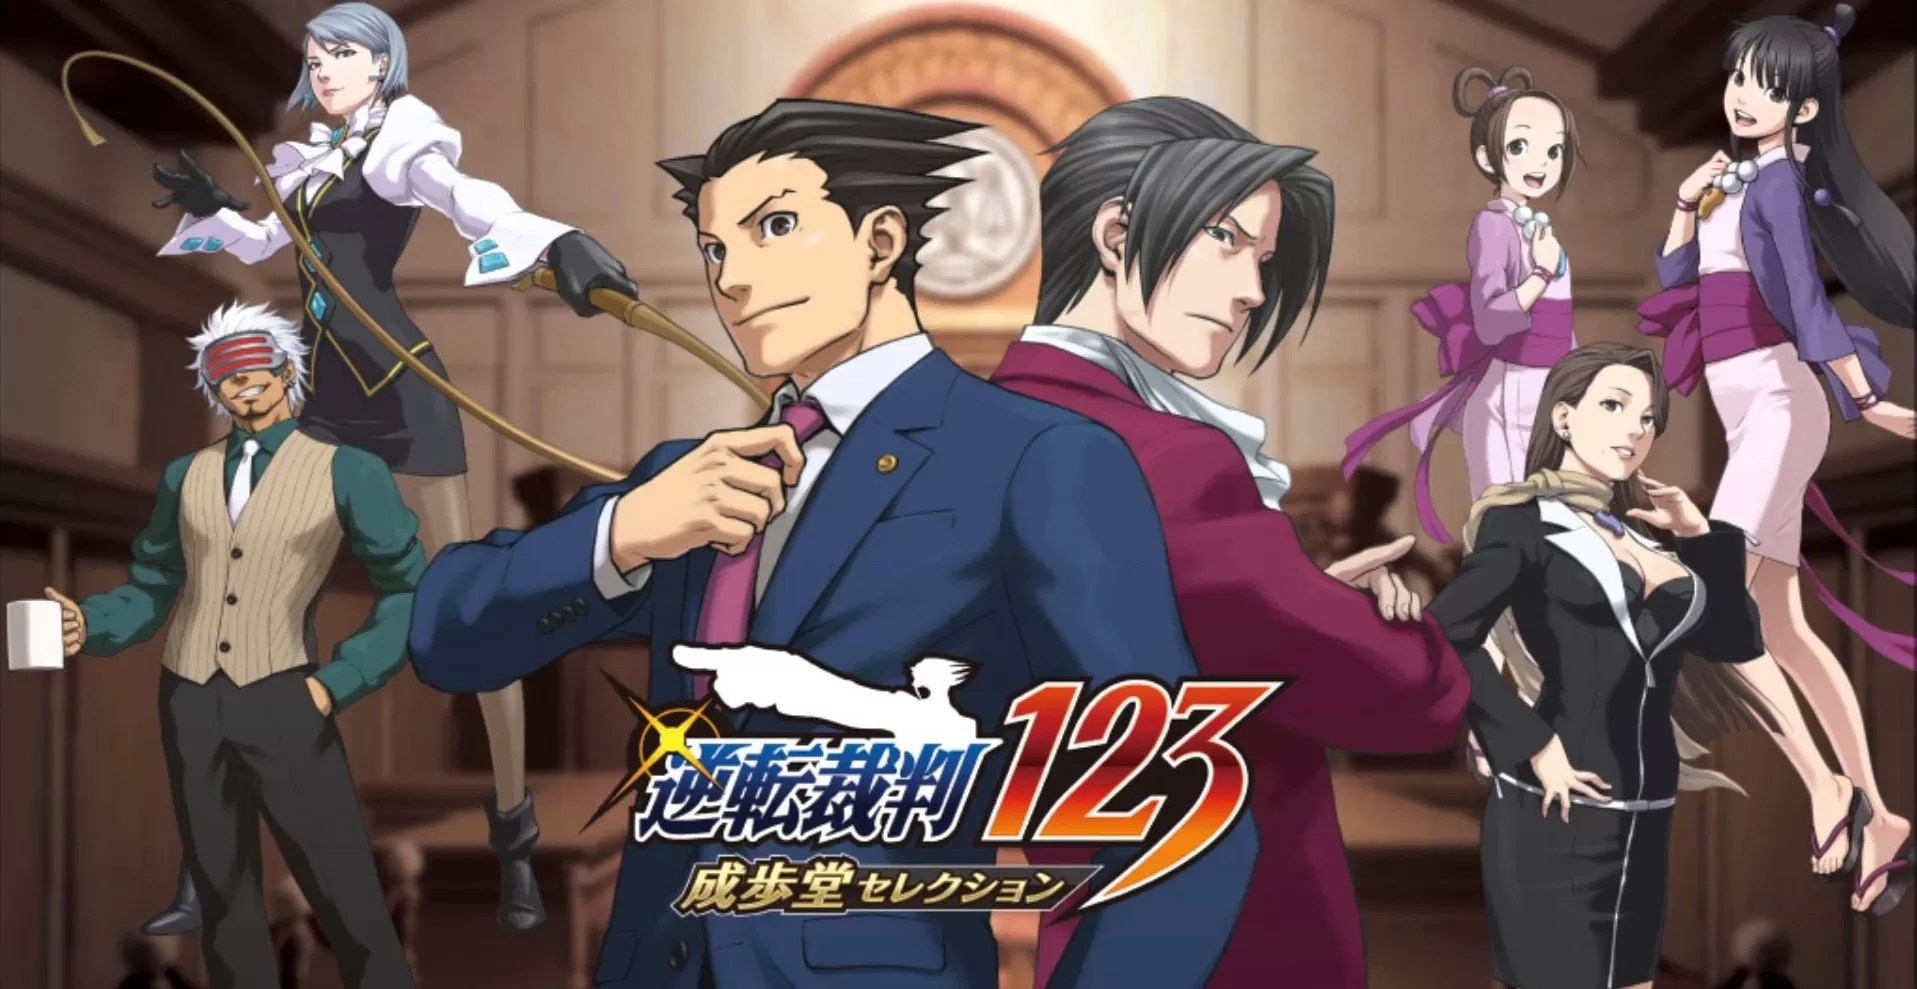 Phoenix Wright Ace Attorney Trilogy Gets A Japan Release Date